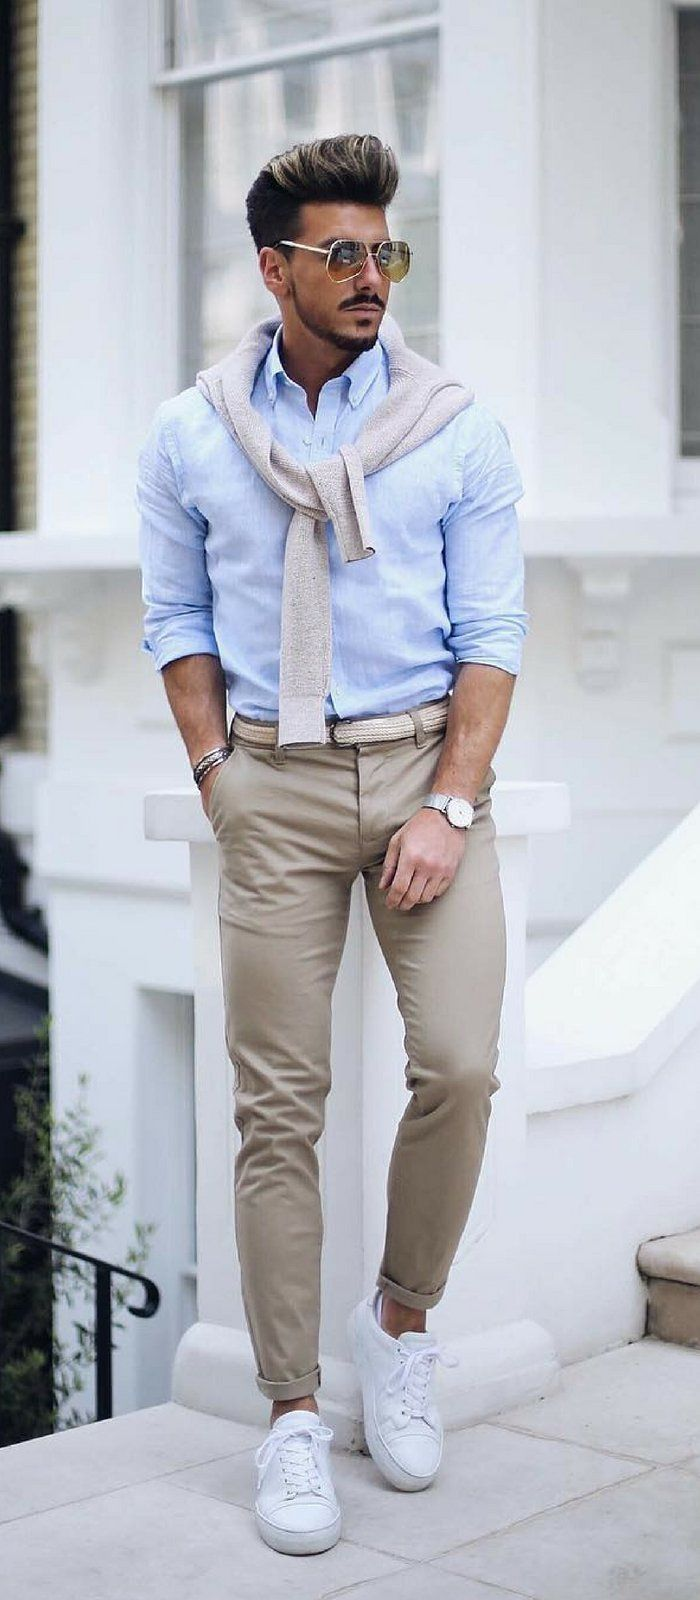 45 Minimalist Business Outfit Idea For Men You Can Take It S Outfits Pinterest Casual Mens Fashion And